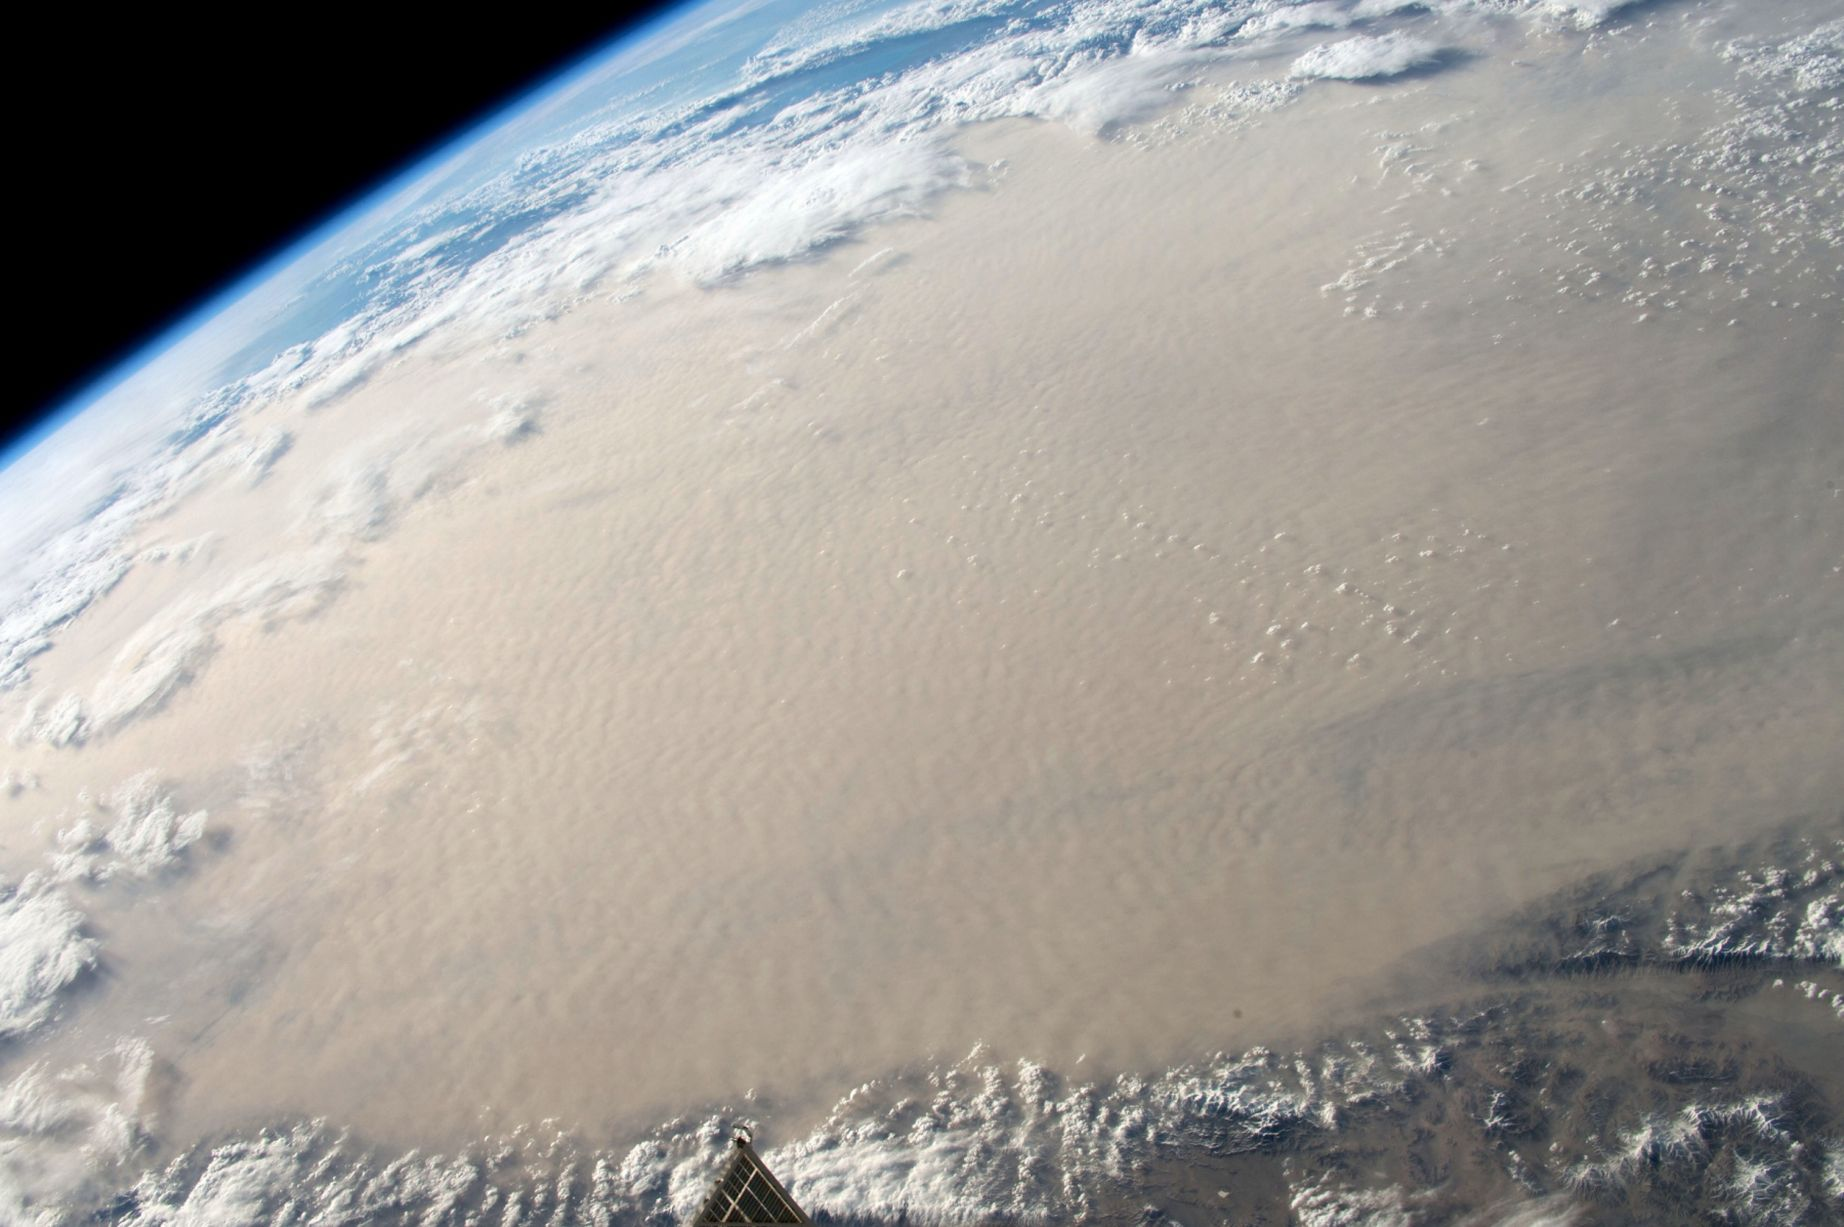 Stunning photos from the International Space Station-Gobi desert in Mongolia.